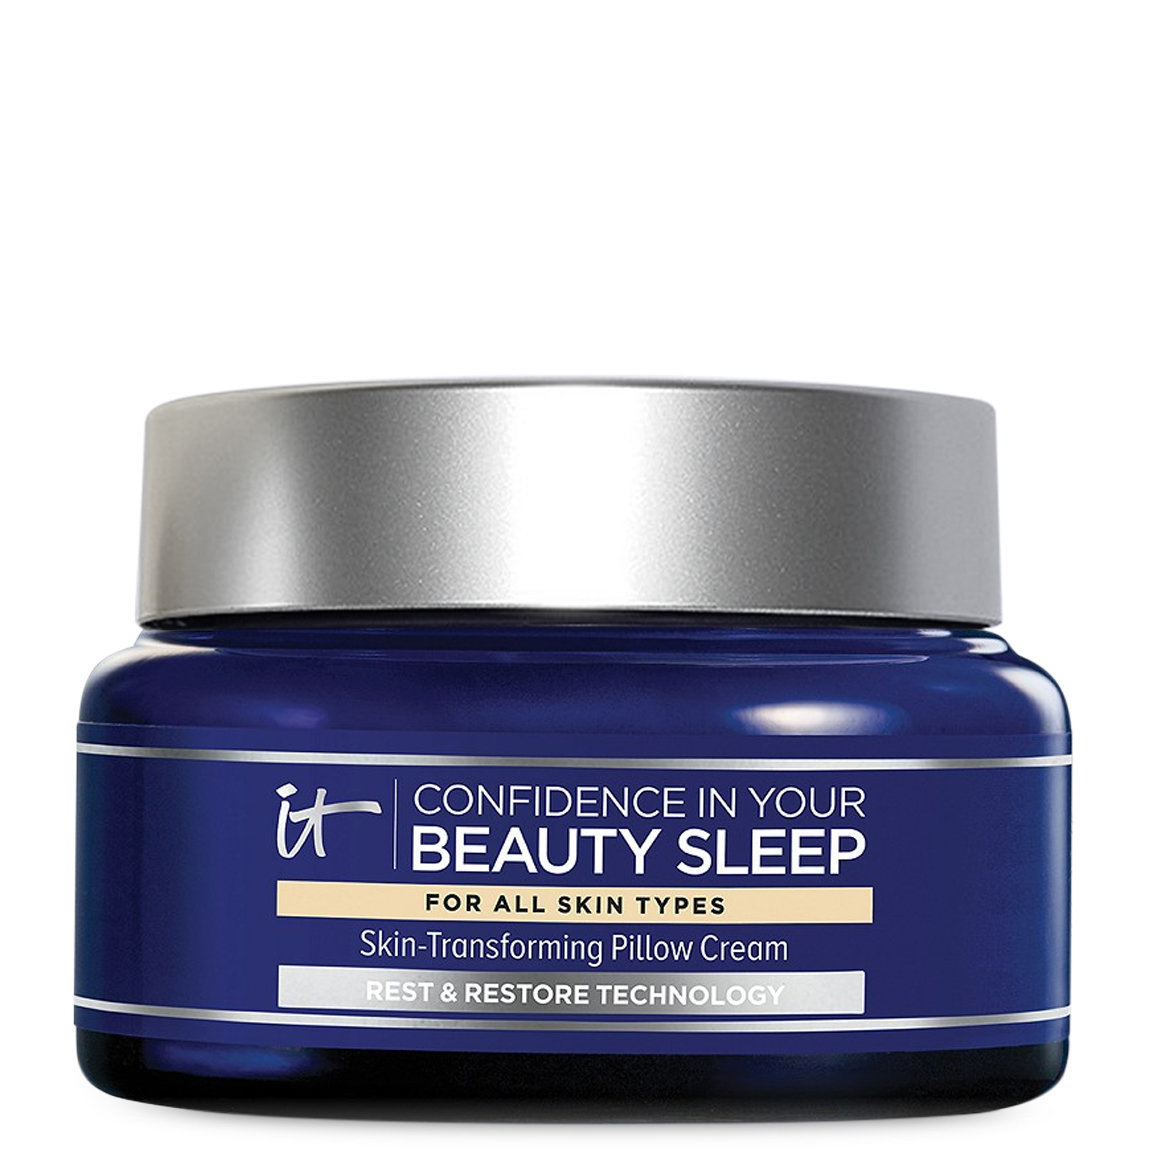 IT Cosmetics  Confidence in Your Beauty Sleep Night Cream product swatch.